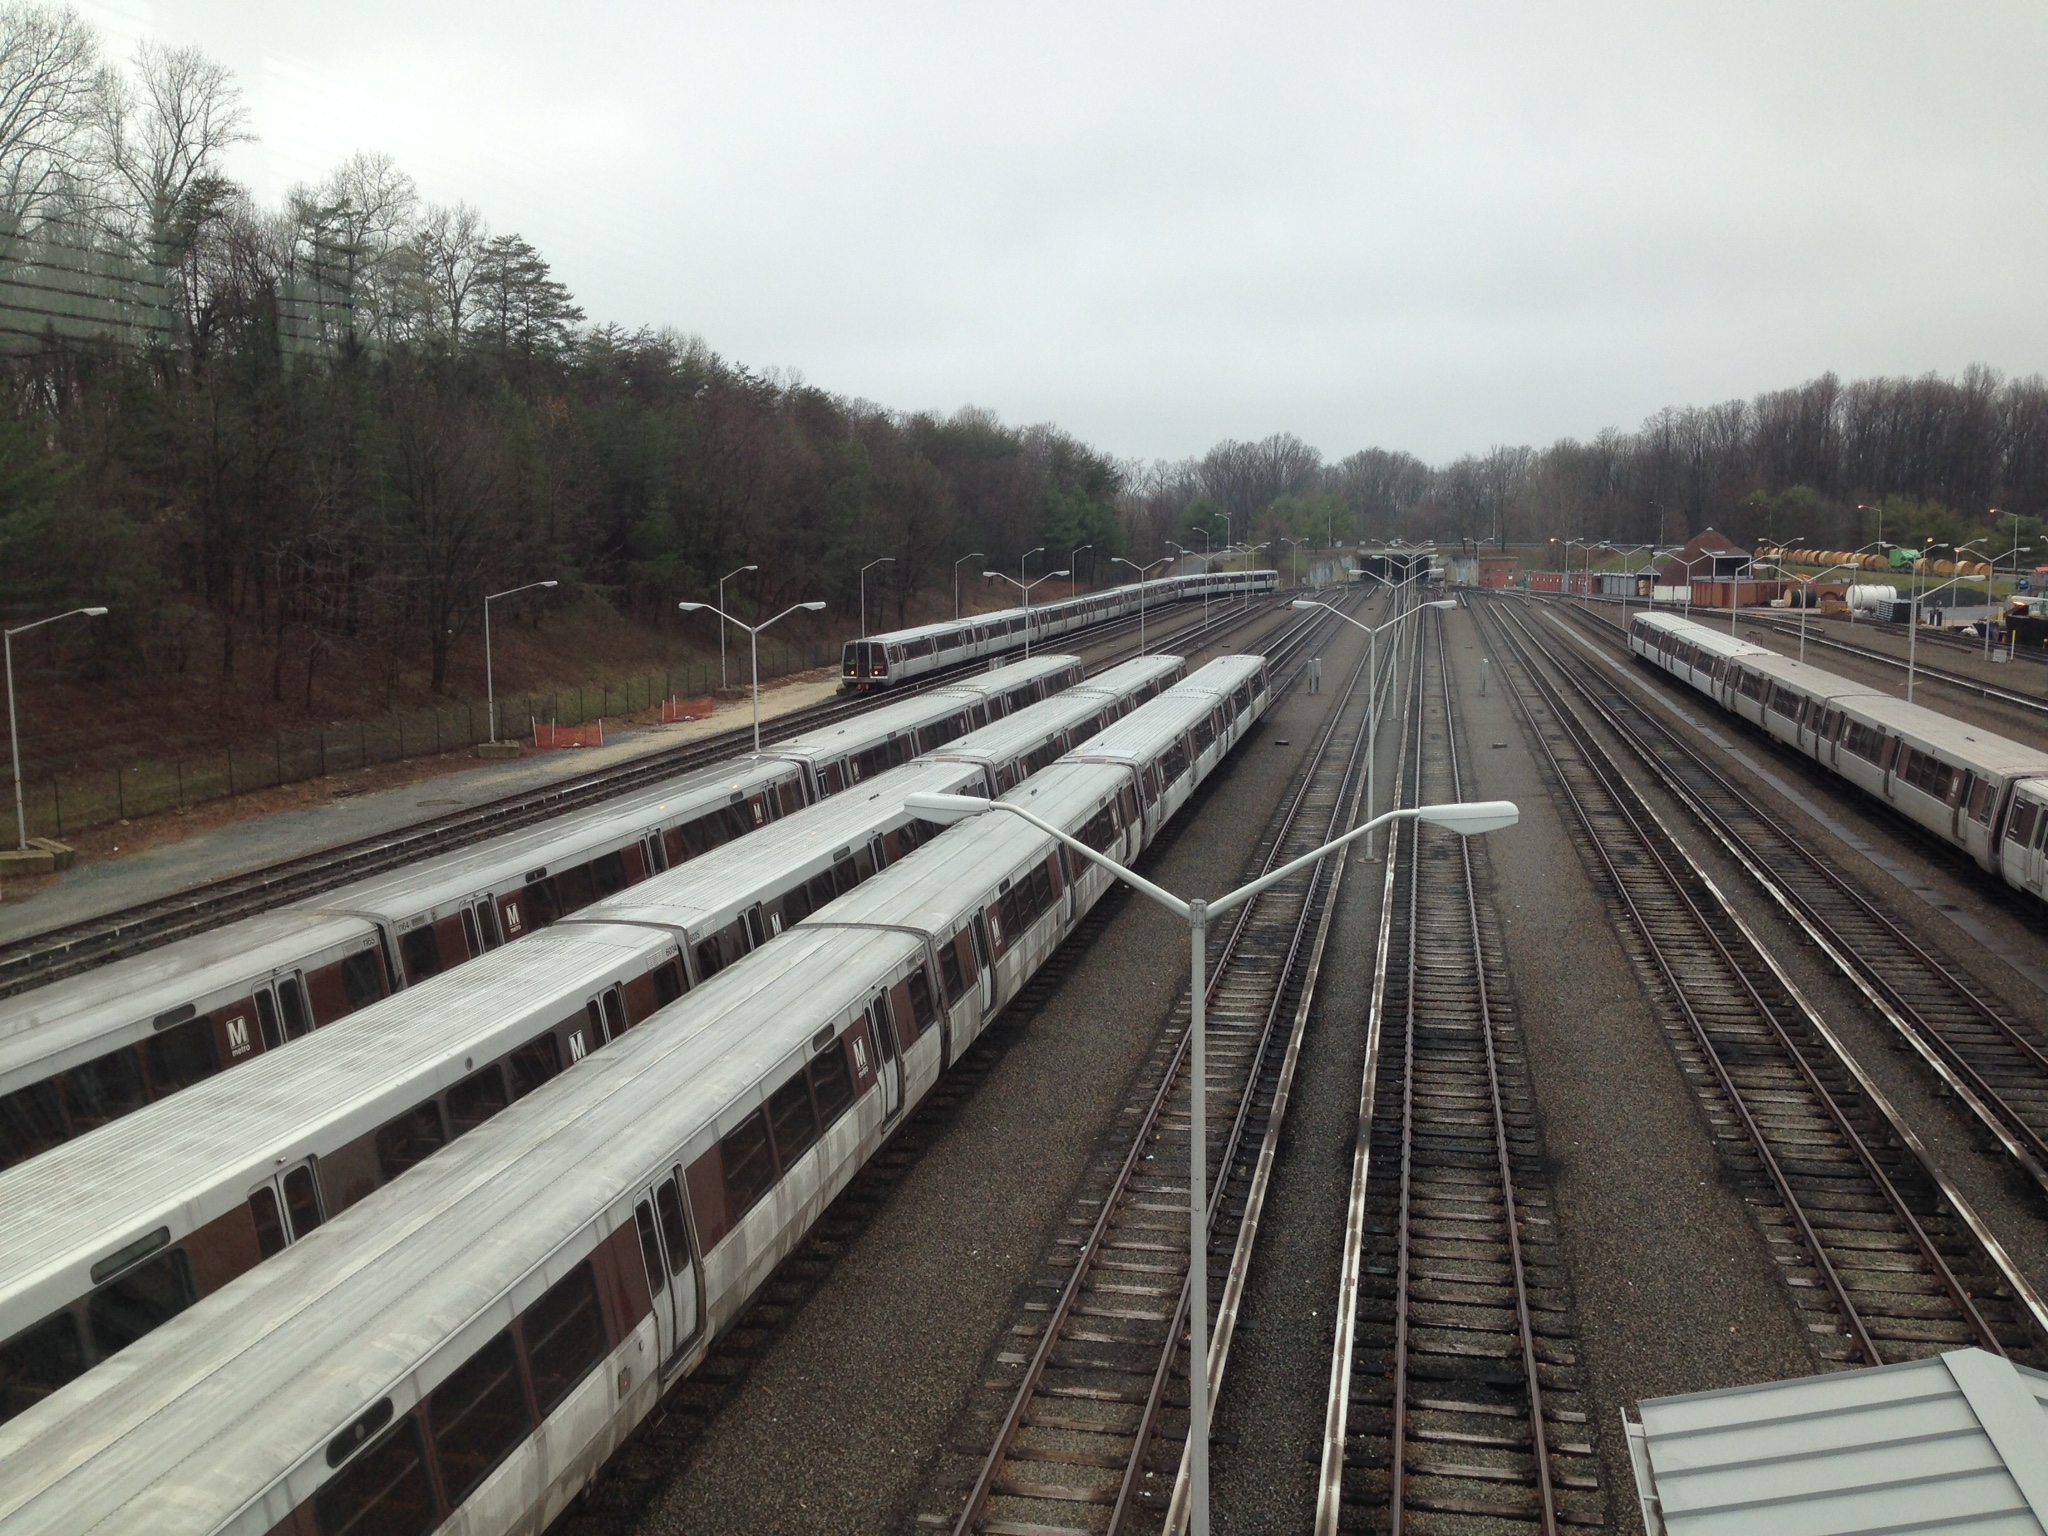 Metrorail trains parked in a yard